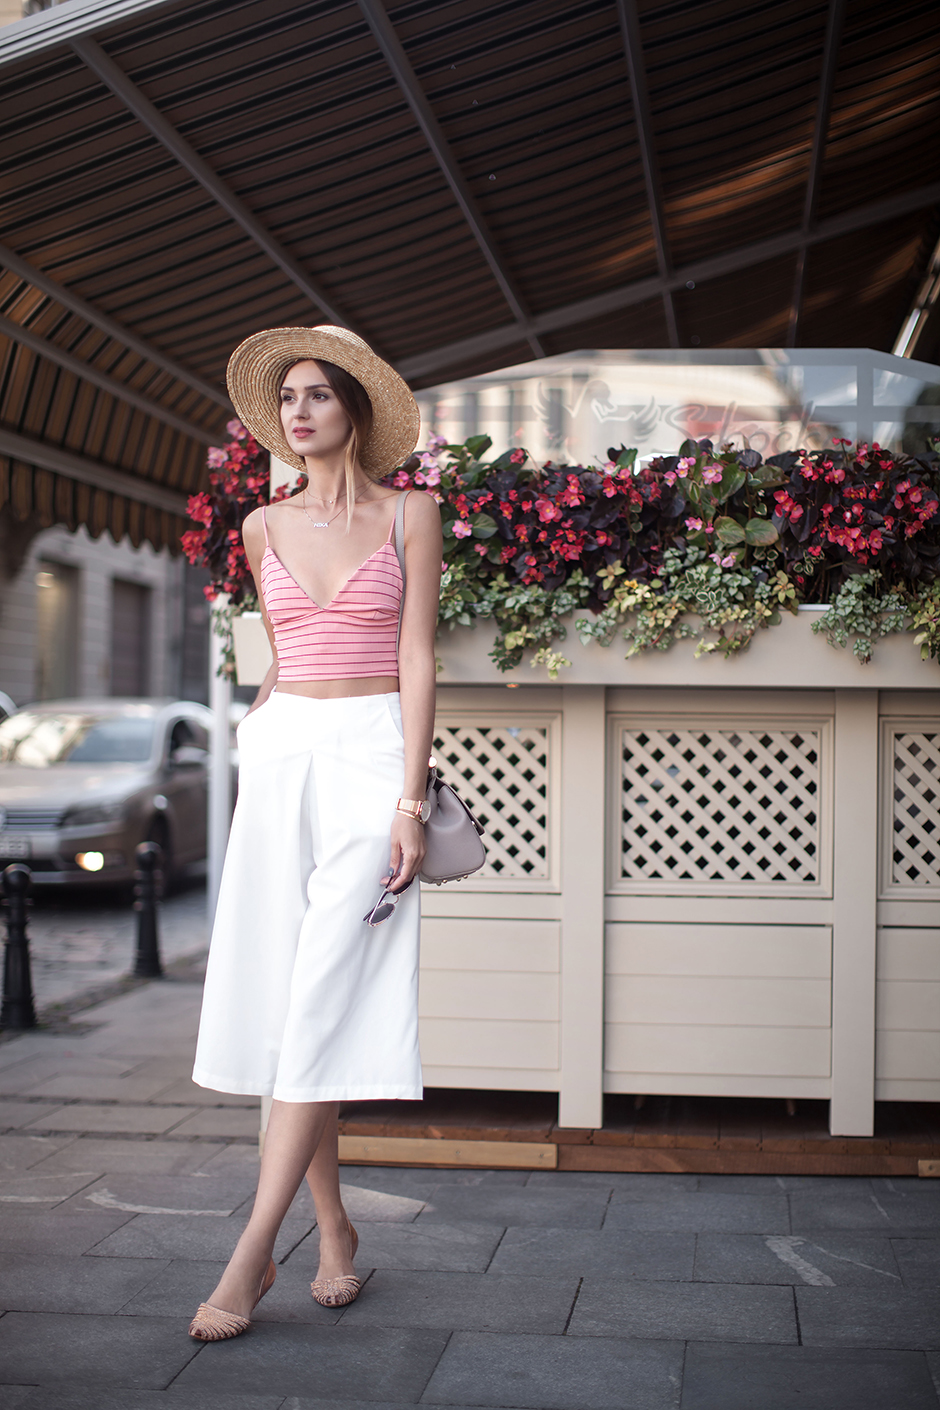 fashion-blogger-crop-top-hat-culottes-street-style